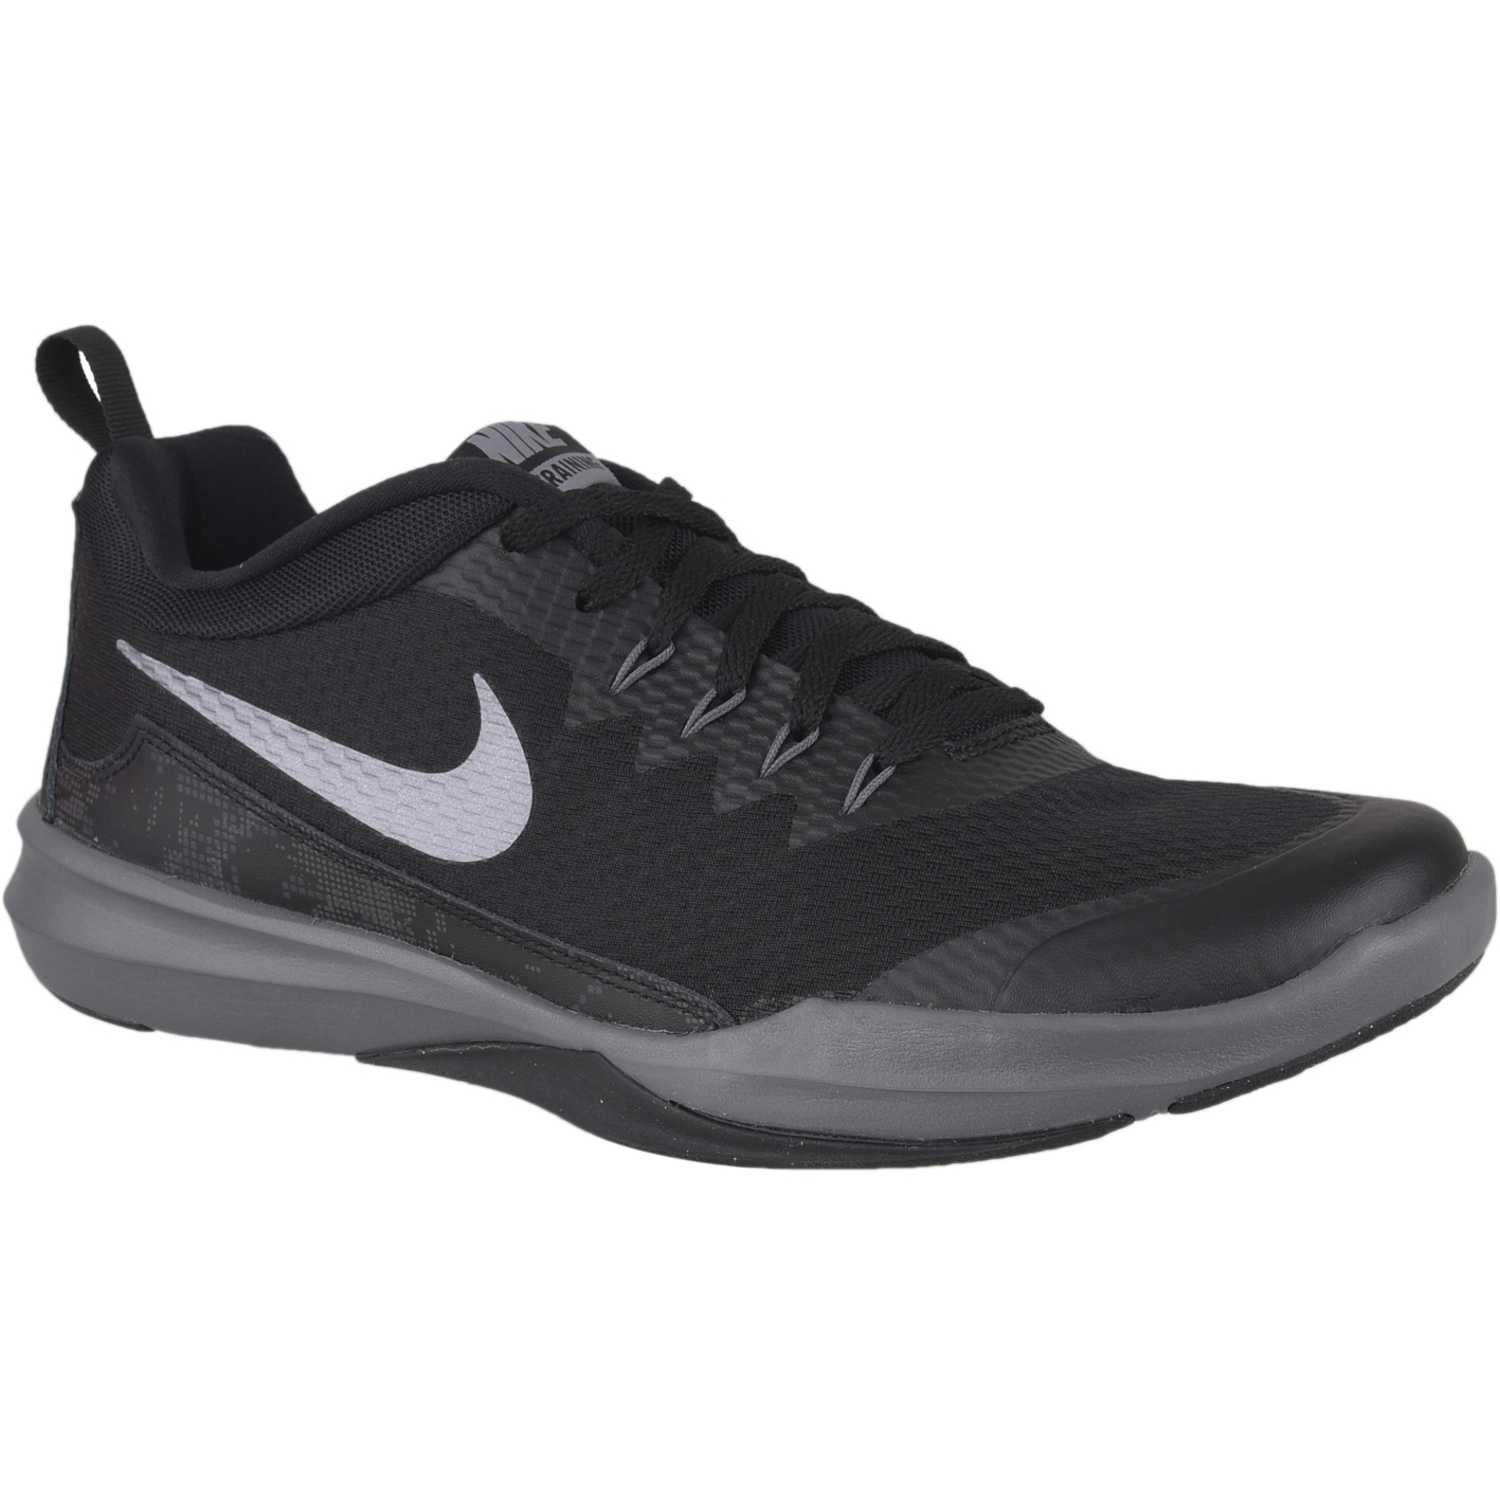 Nike nike legend trainer Negro Hombres